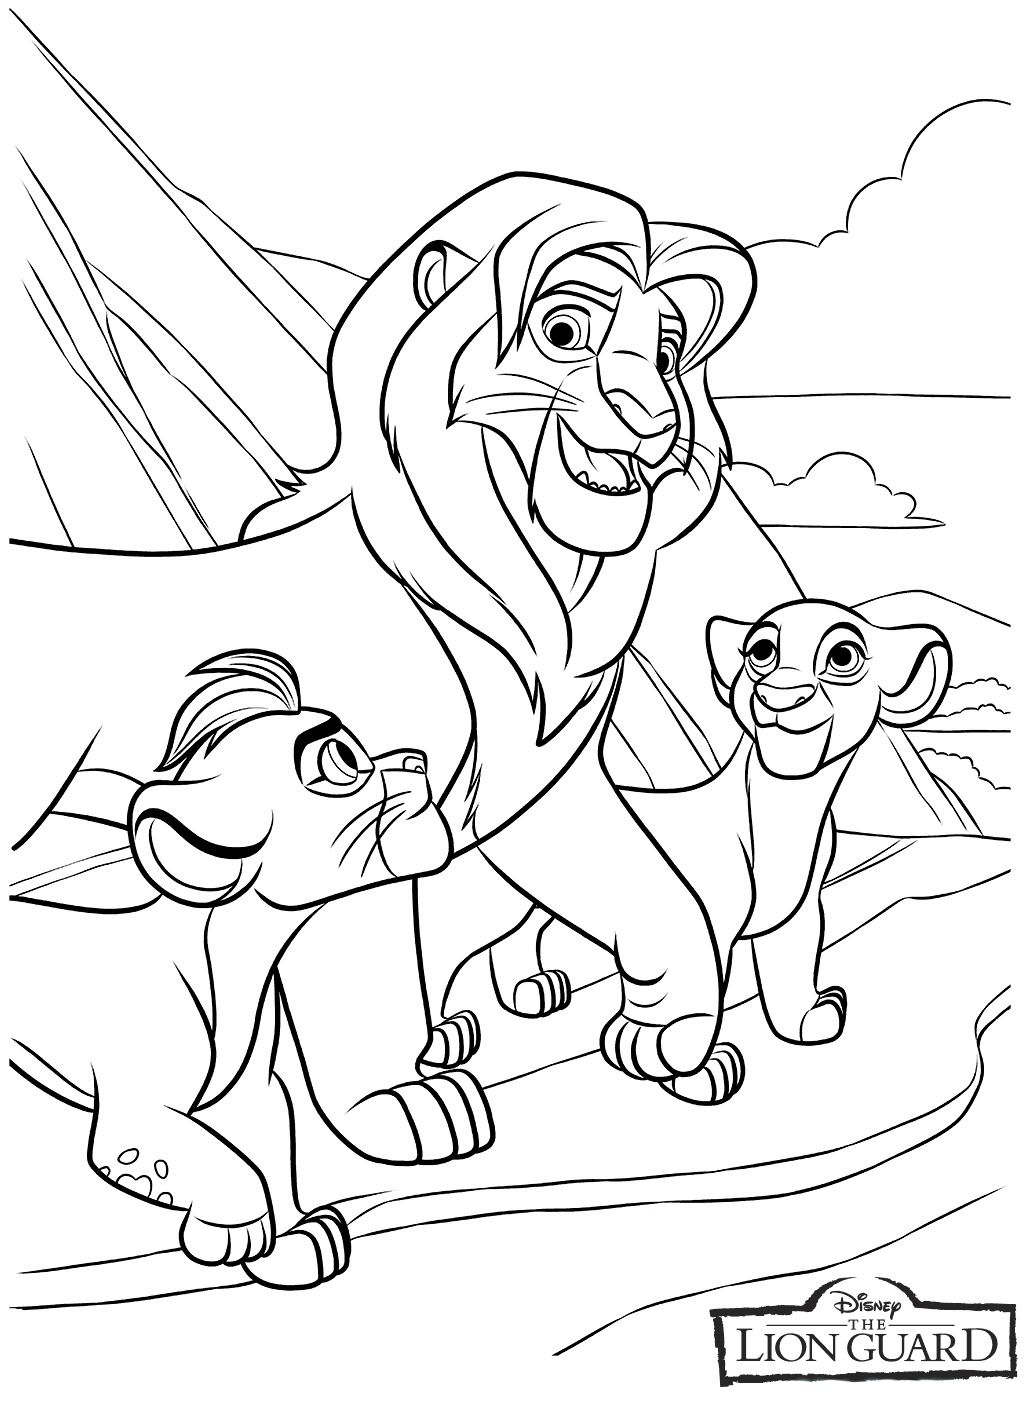 Disney Is At It Again With Lion King S Next Generation Lion Guard Simba And Nala Has A Famil Lion Coloring Pages Cartoon Coloring Pages Family Coloring Pages